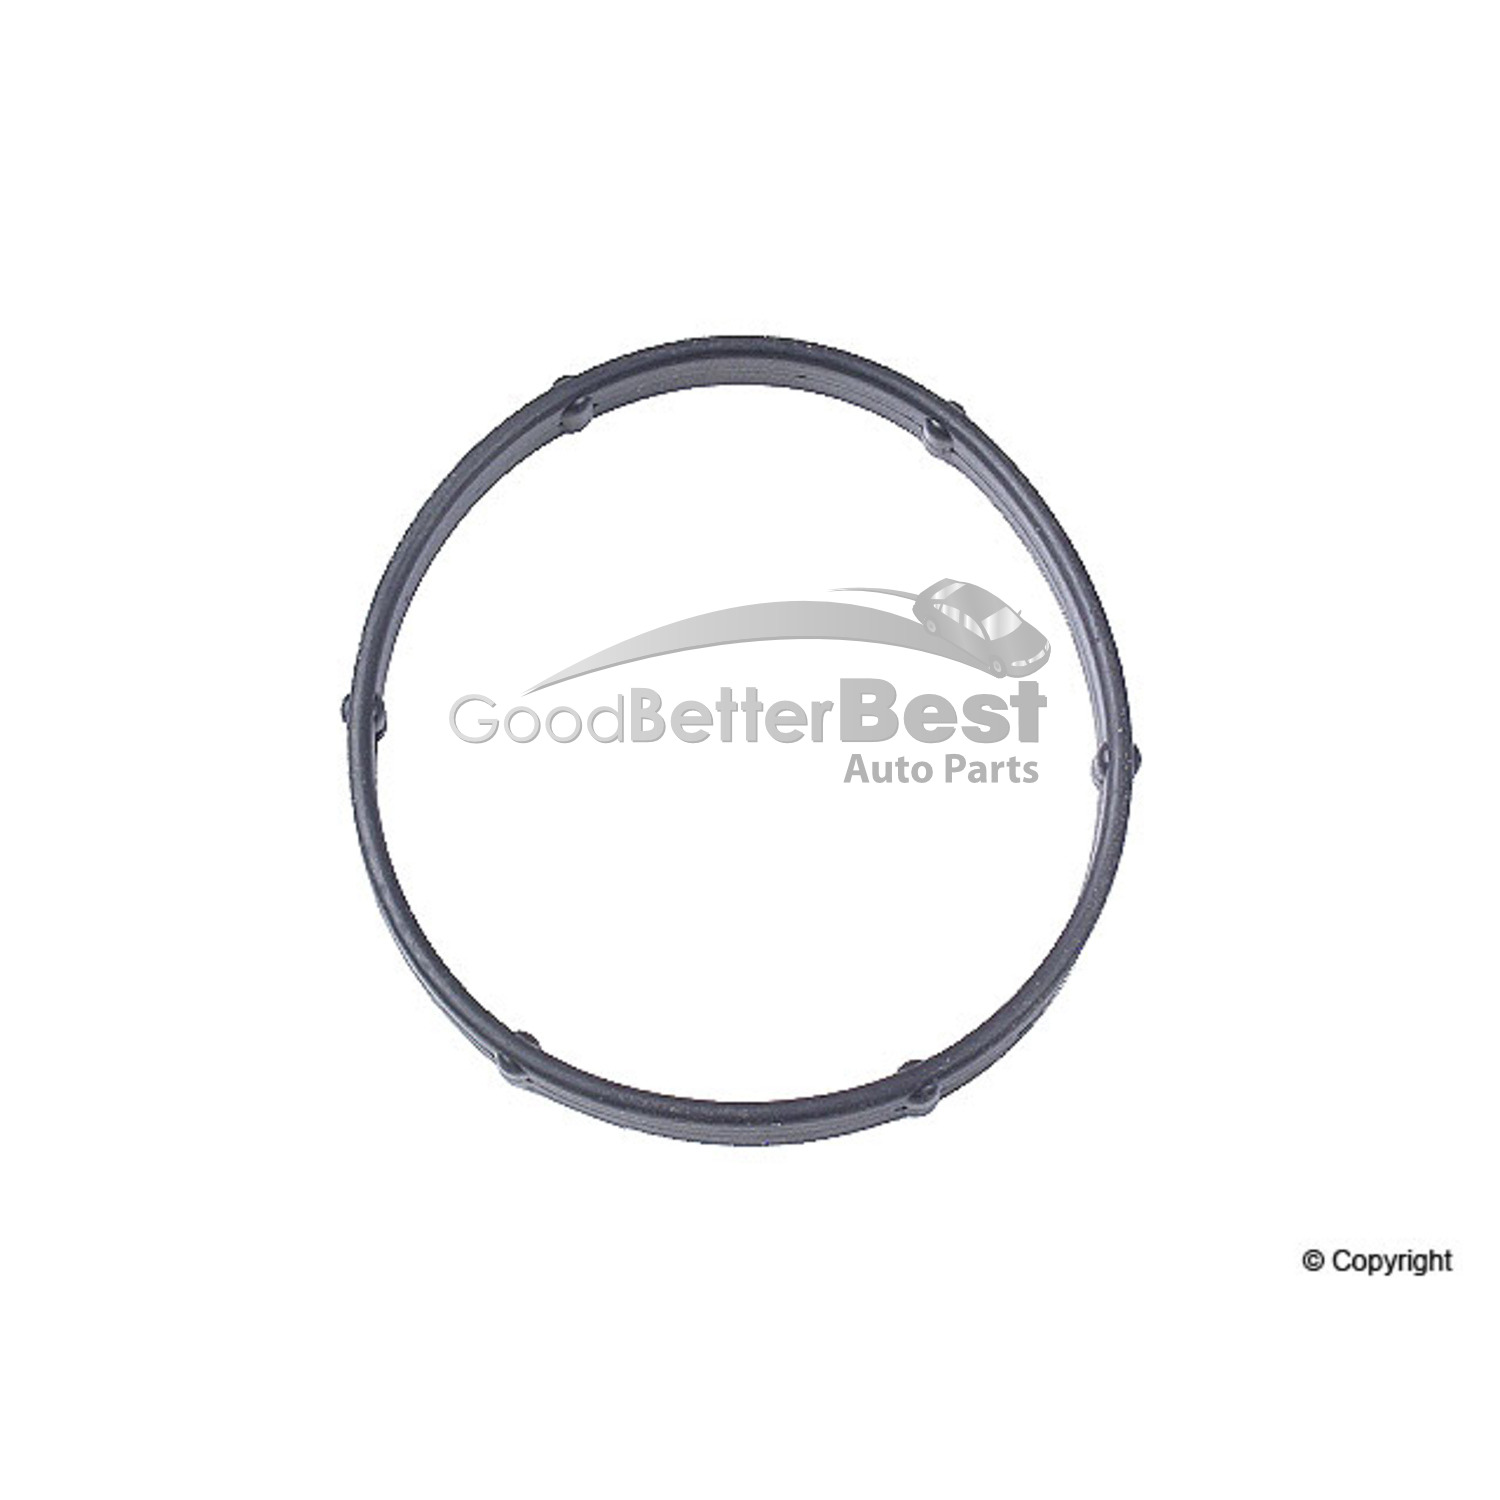 One New Uro Engine Coolant Thermostat Housing Seal